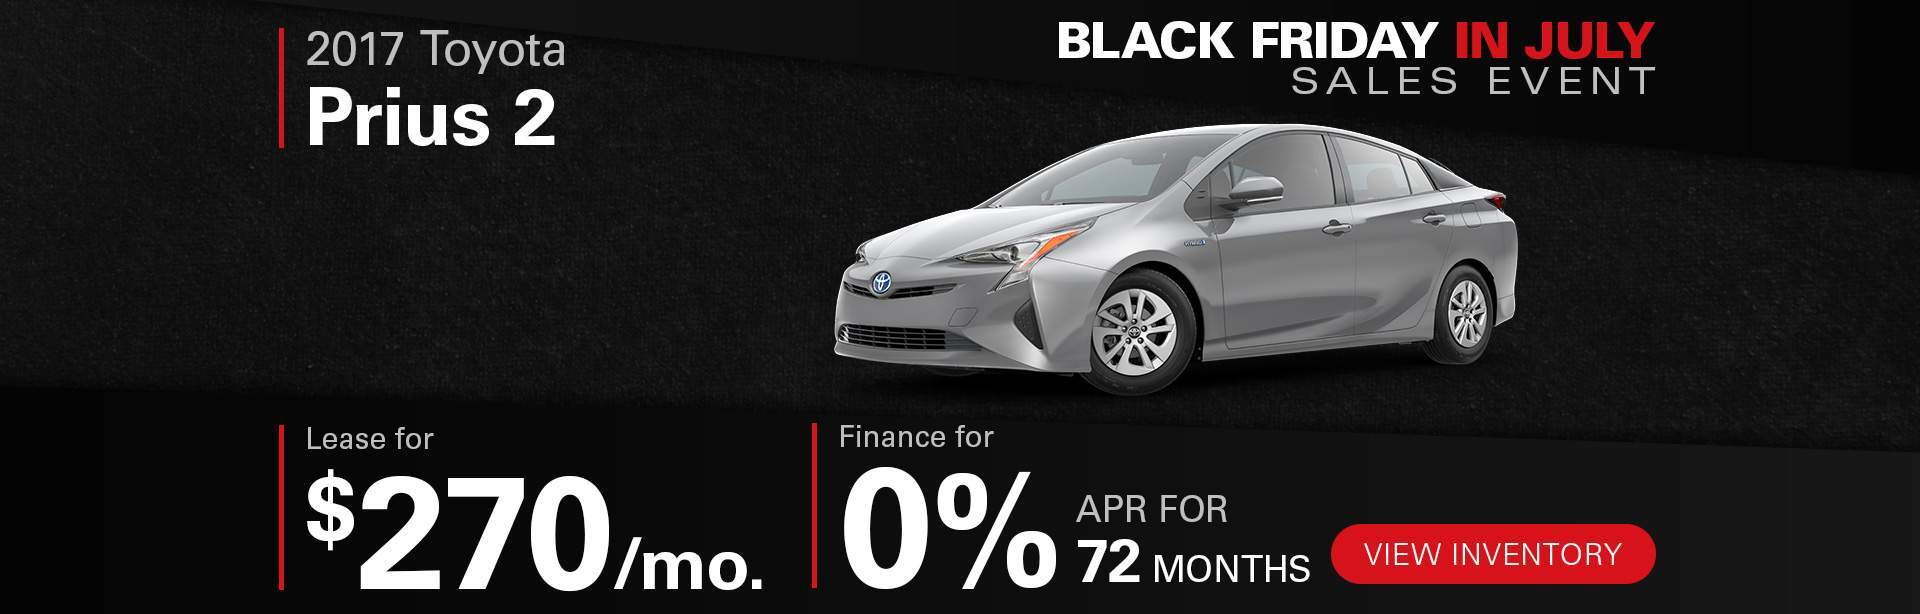 Black Friday In July Prius 2